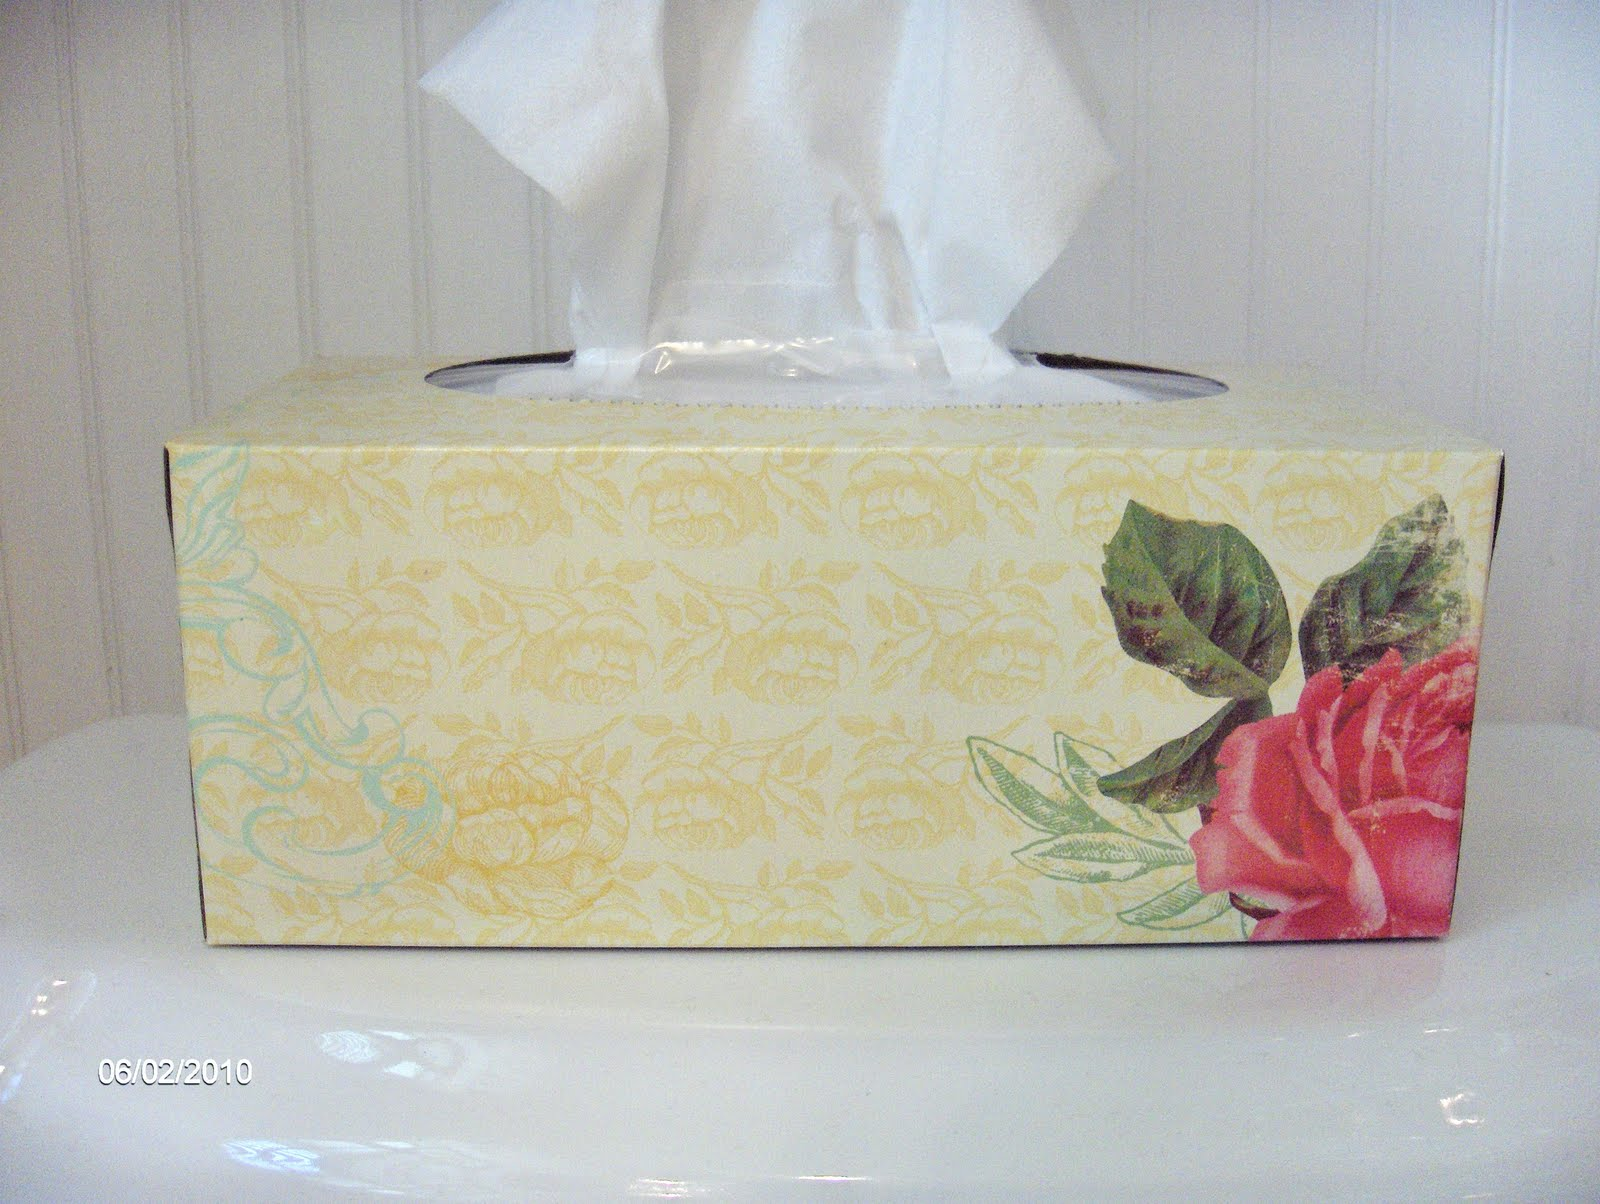 Inspired by a Tissue Box | Colleen Dietrich Designs